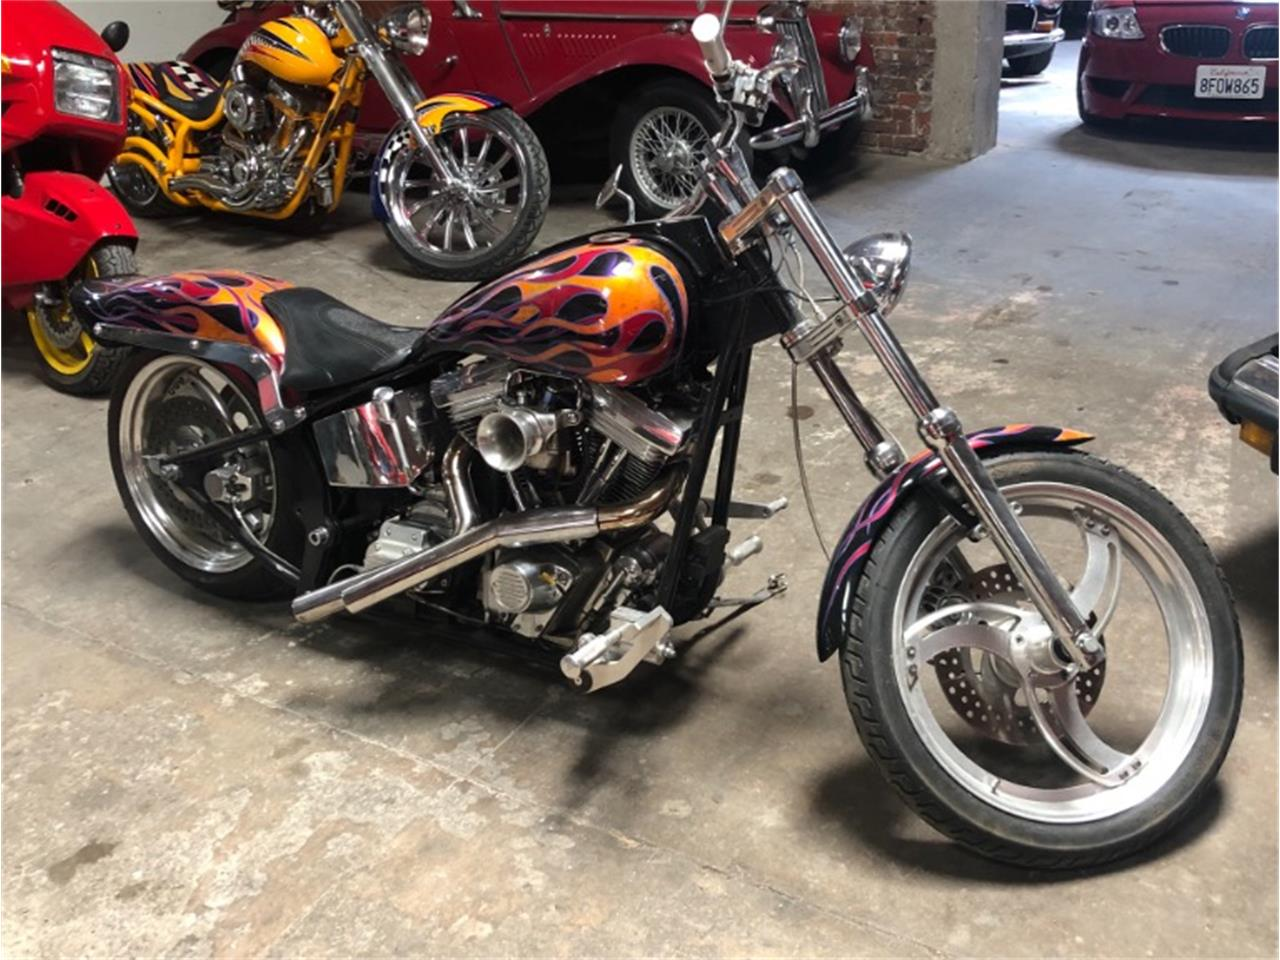 Large Picture of 1996 Motorcycle located in California Auction Vehicle Offered by Sports Car LA - Q5FD